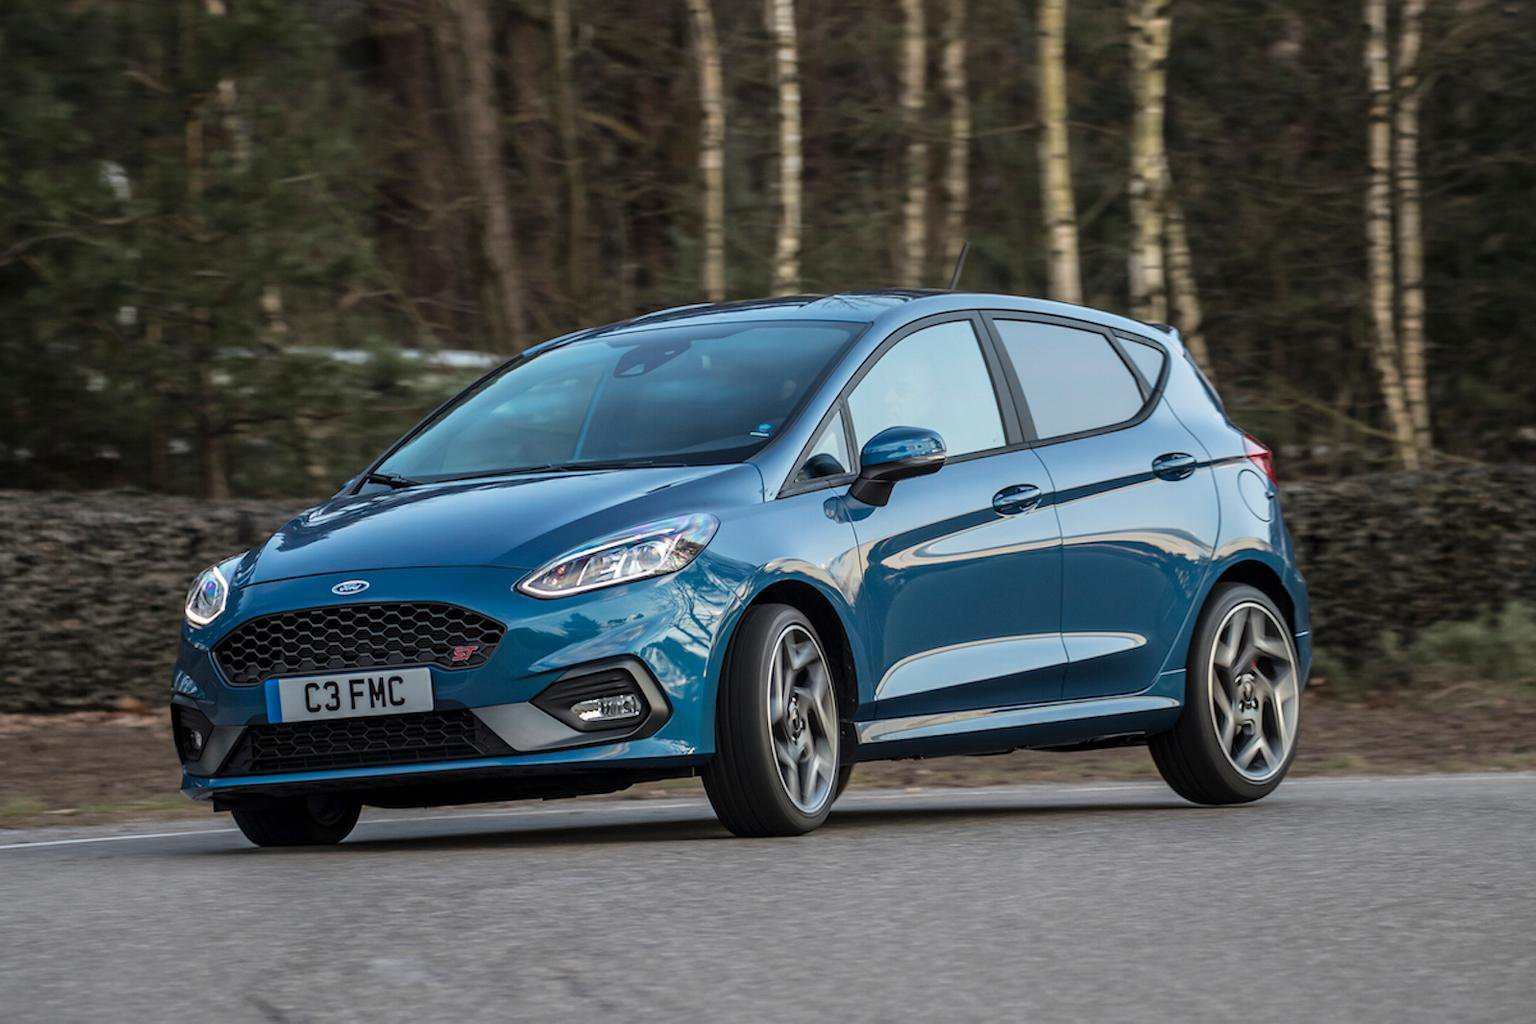 2018 Ford Fiesta ST passenger ride review - verdict